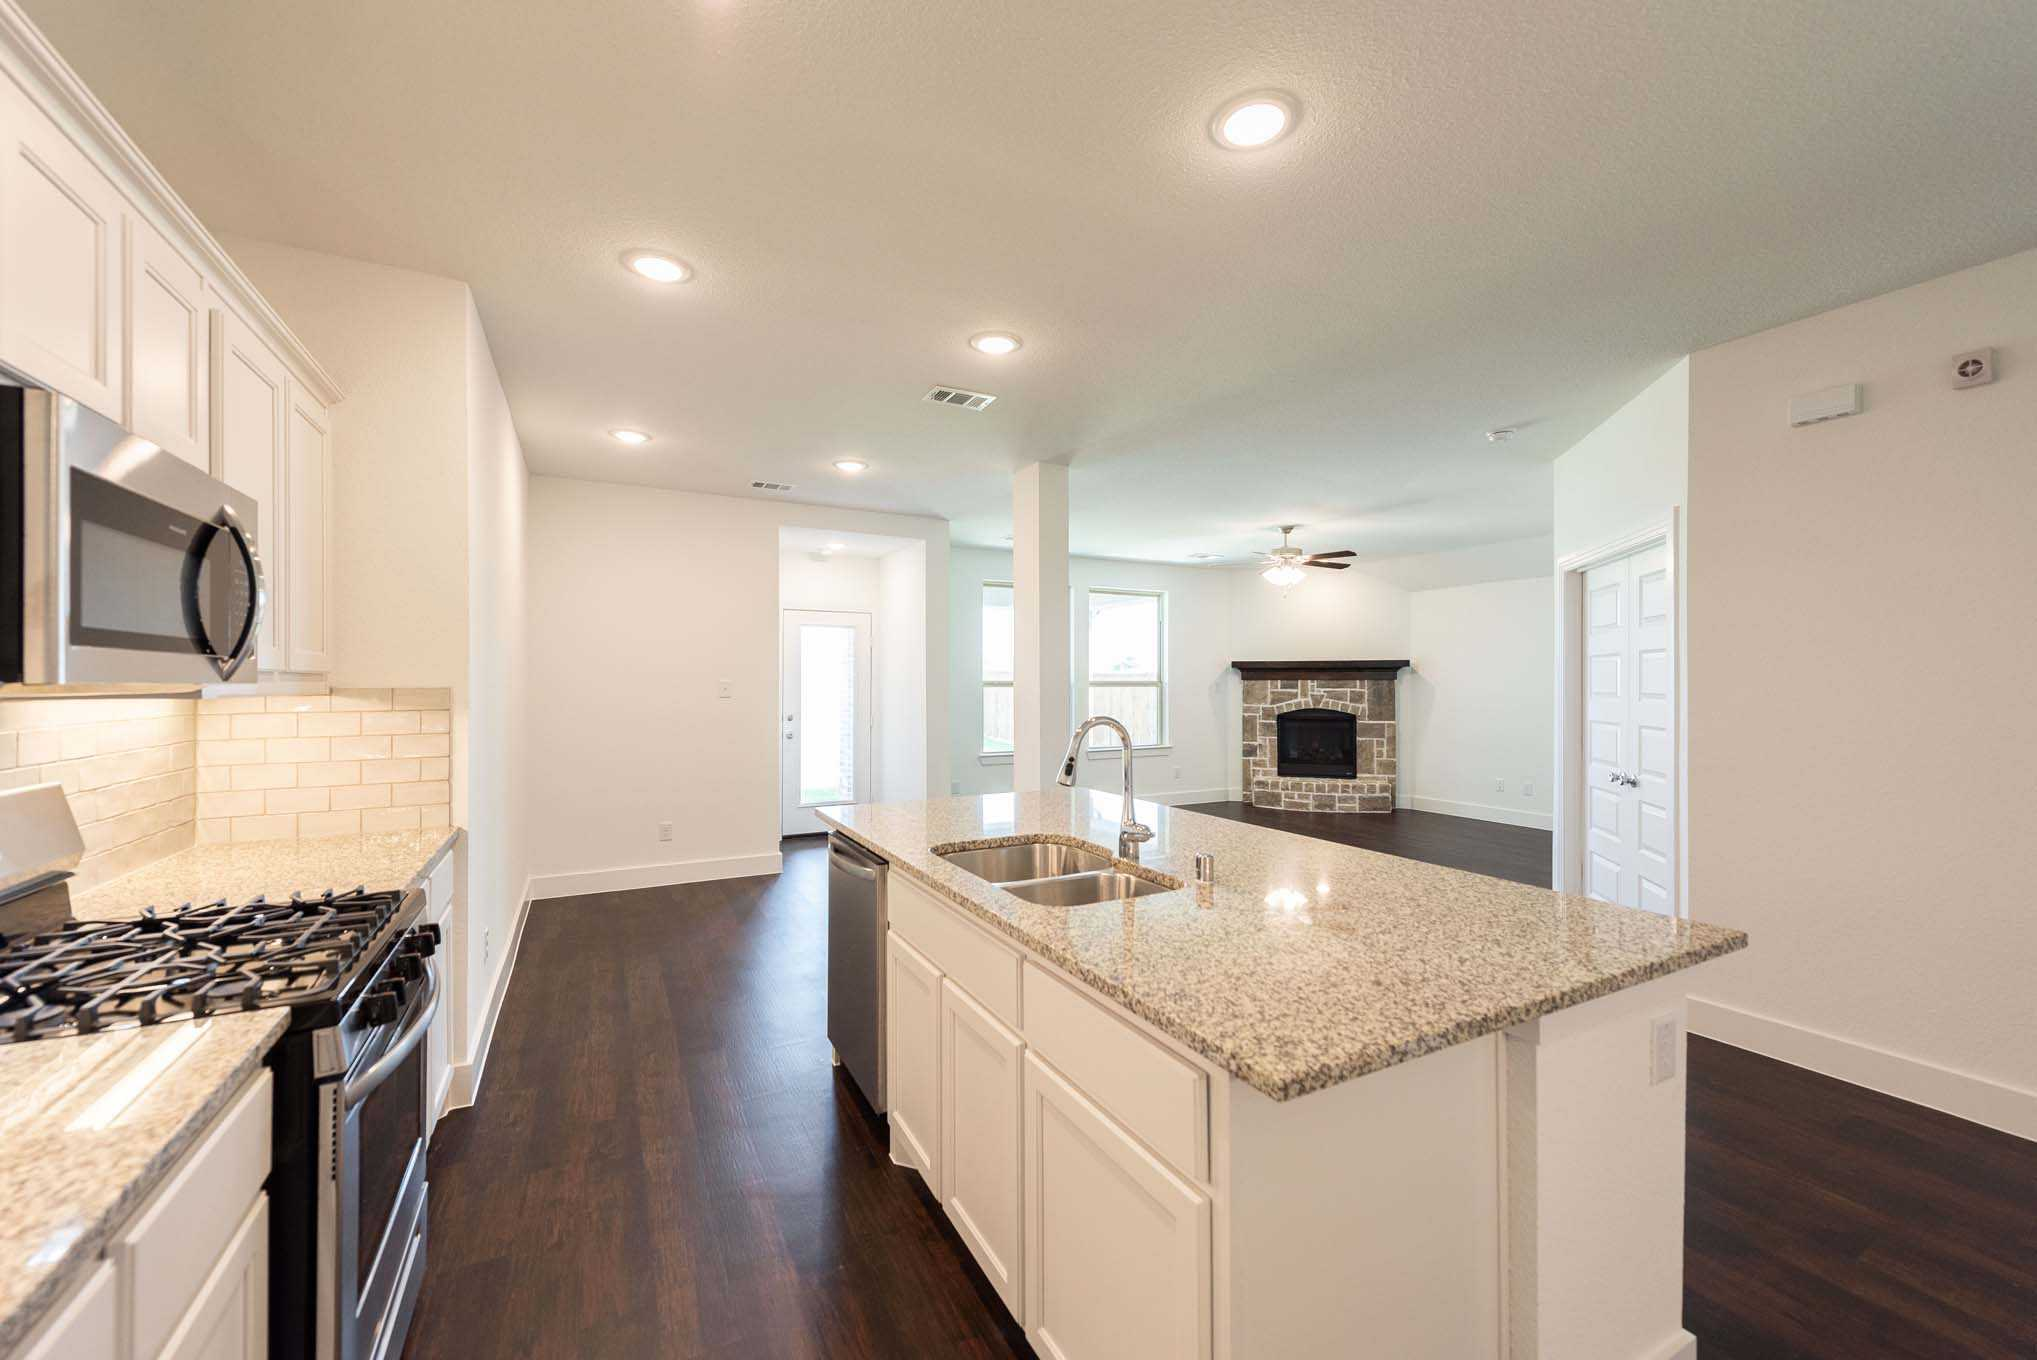 New Home For Sale 723 Esk Avenue Celina Tx 75009